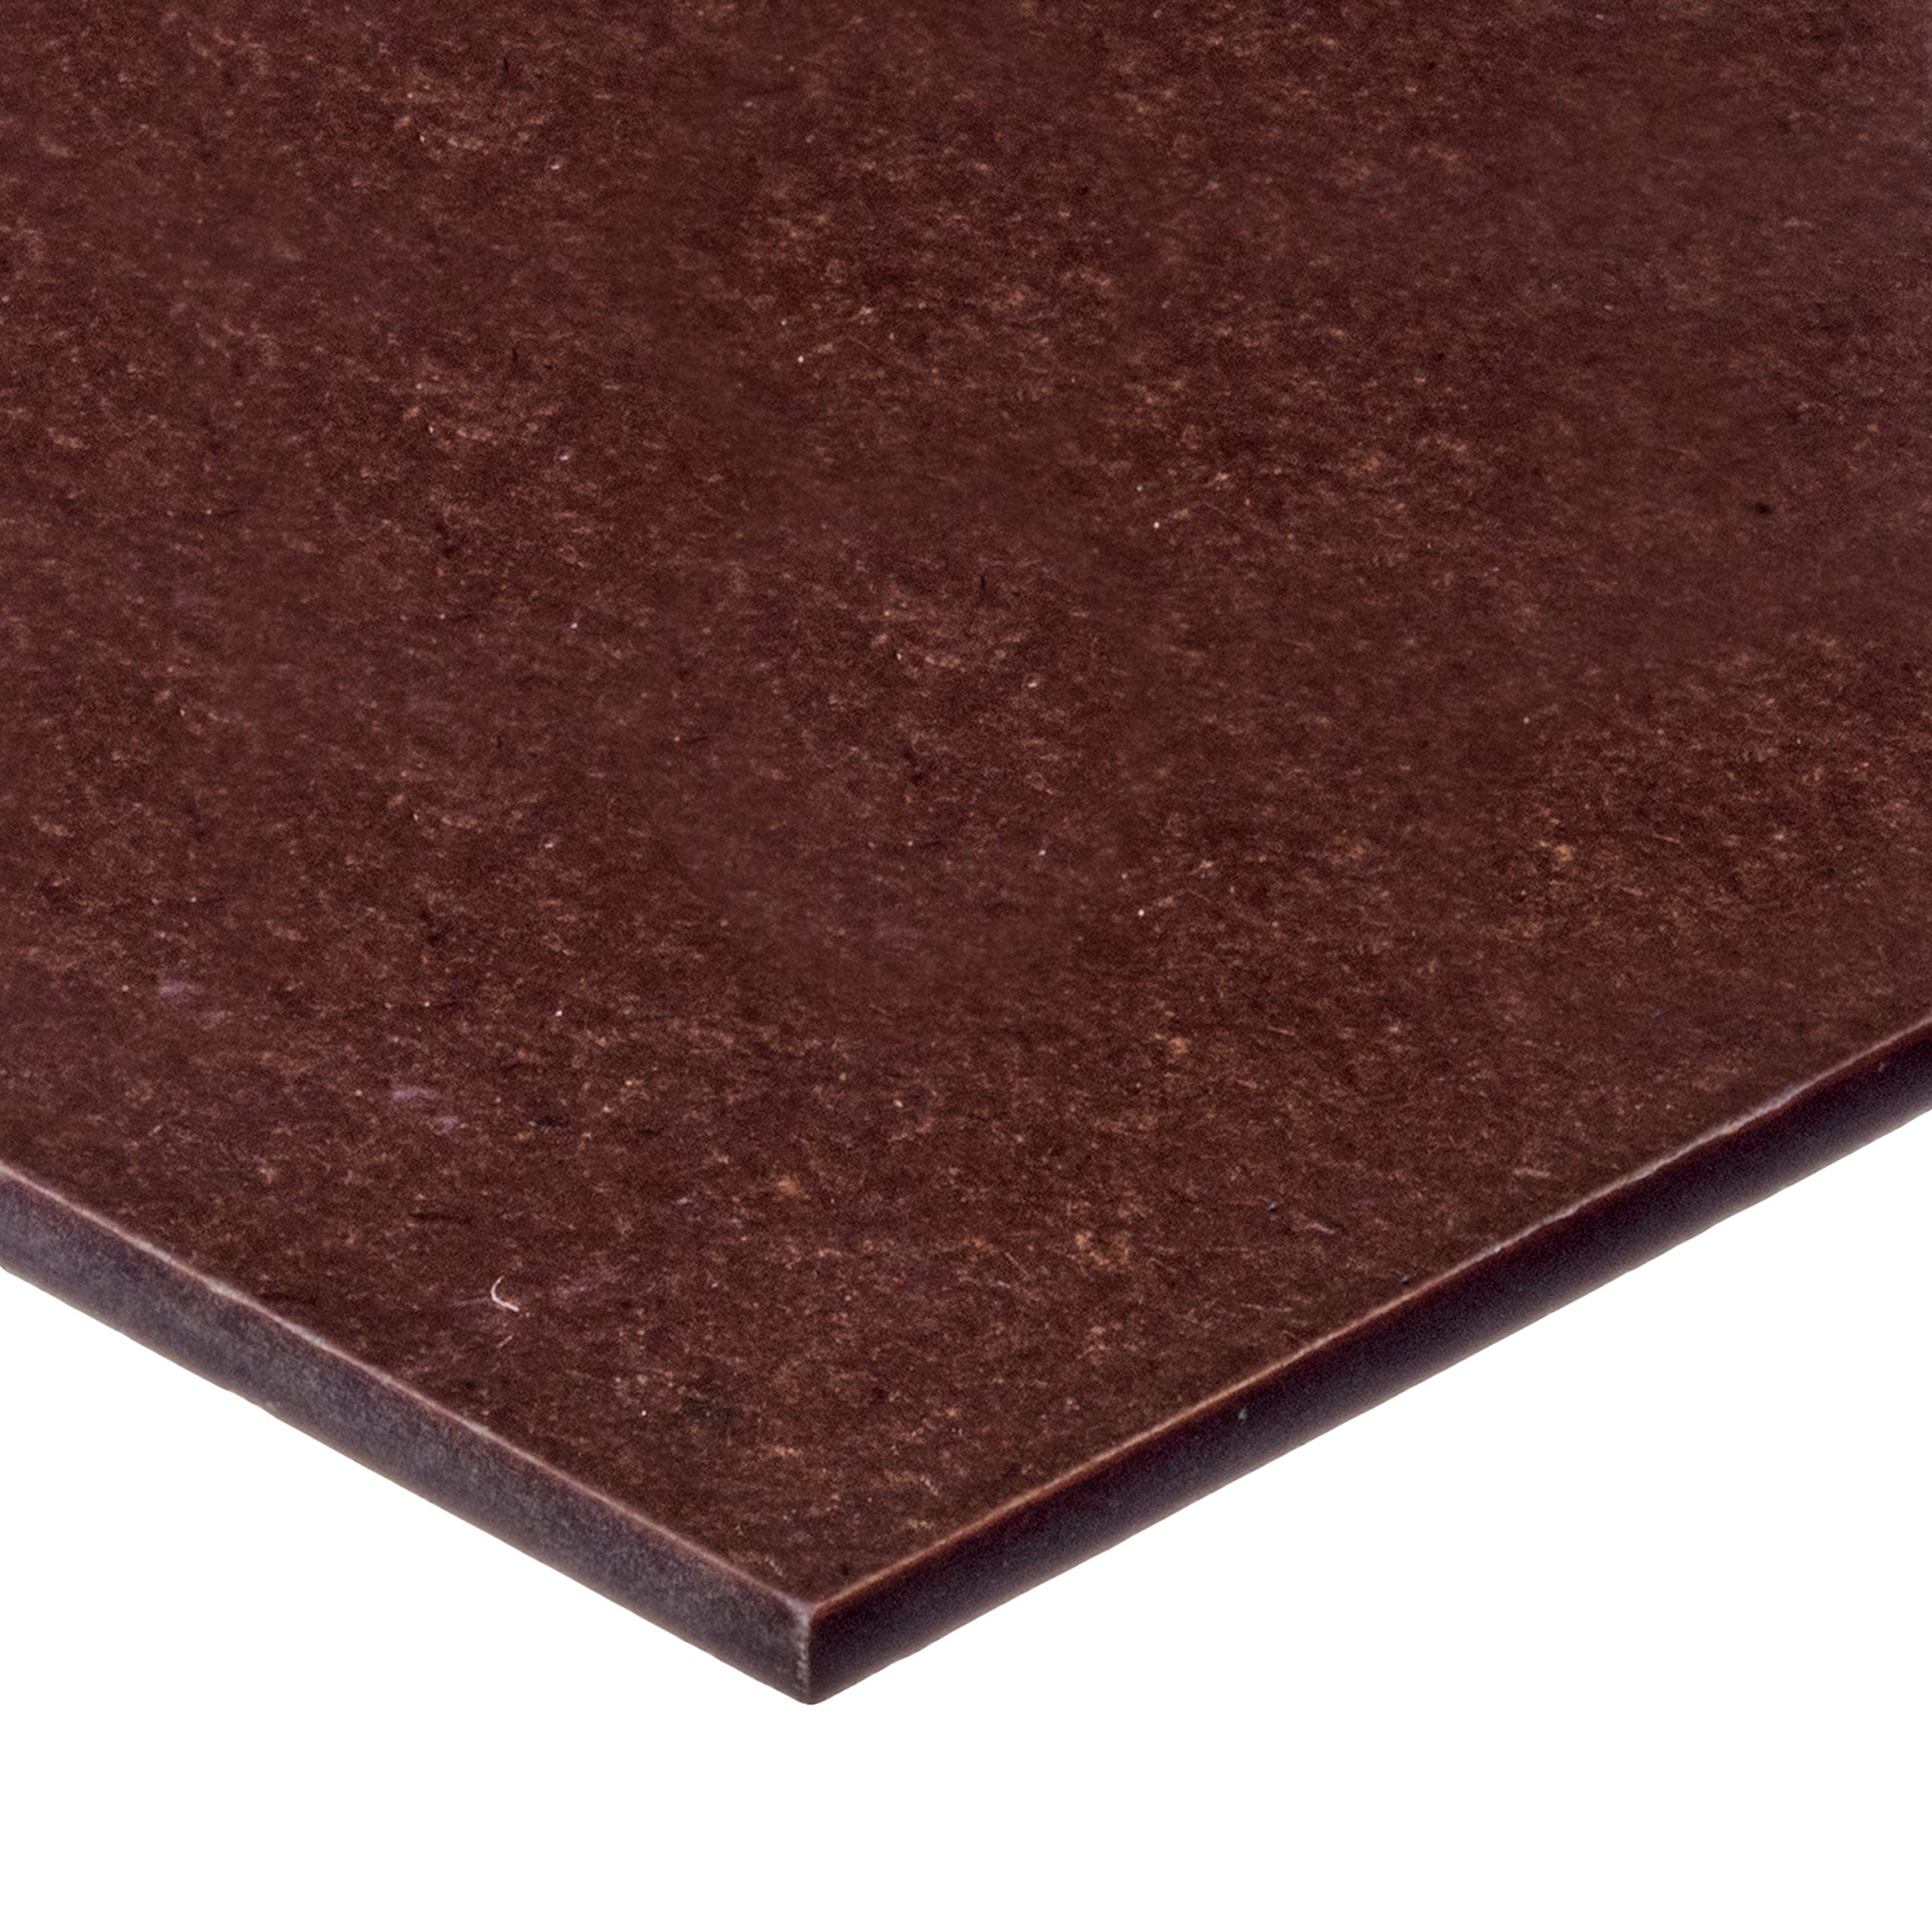 USA Sealing LE Garolite Sheet - 1/2'' Thick x 12'' Wide x 12'' Long by USA Sealing